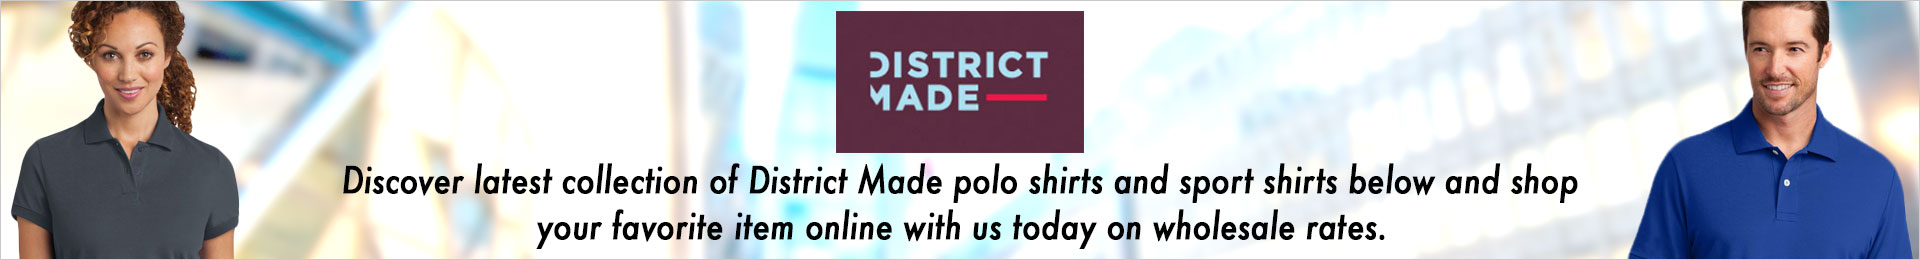 District Made Polo And Sports Shirts